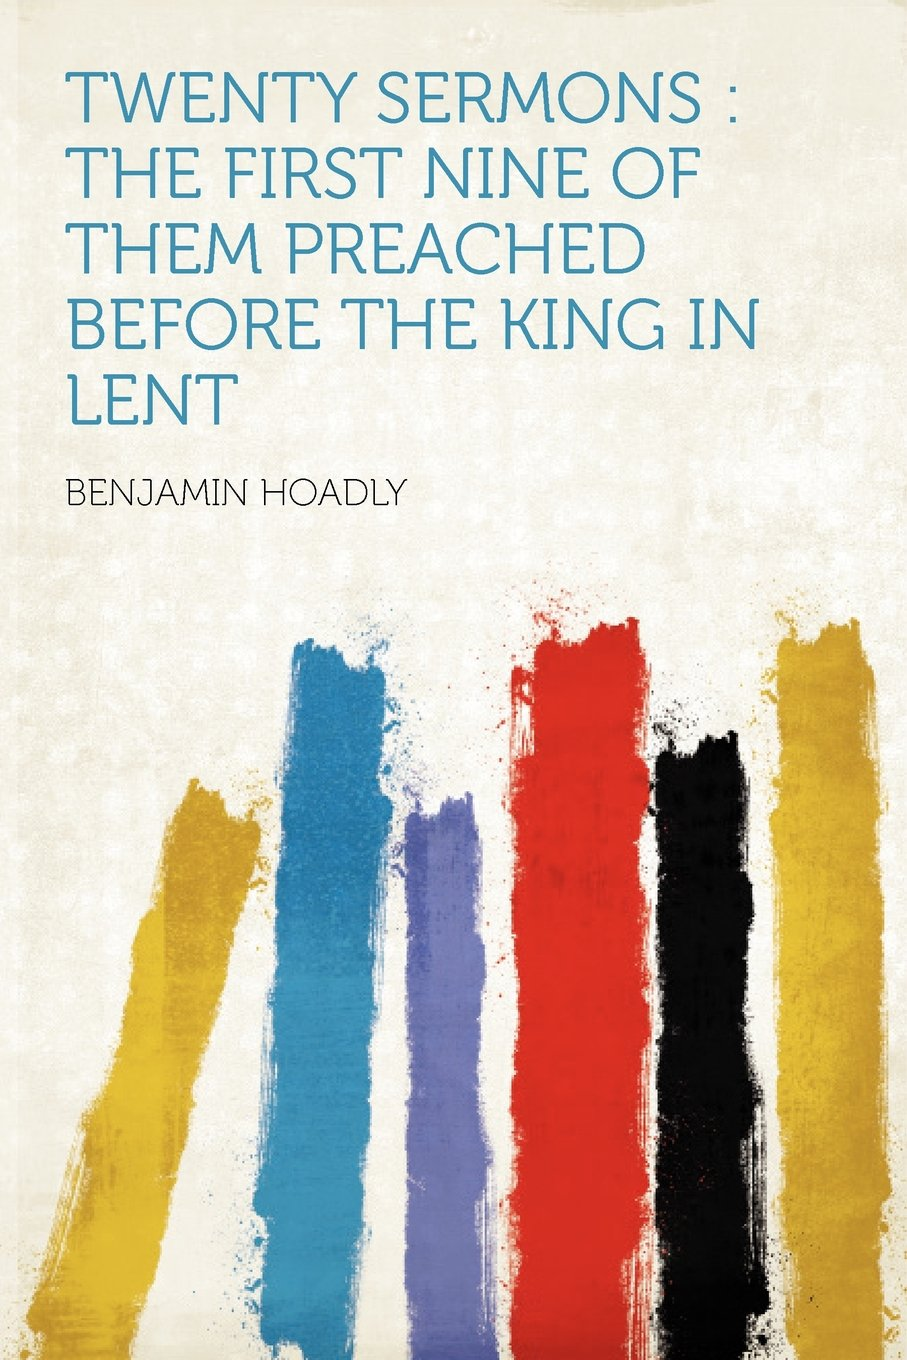 Read Online Twenty Sermons: the First Nine of Them Preached Before the King in Lent PDF